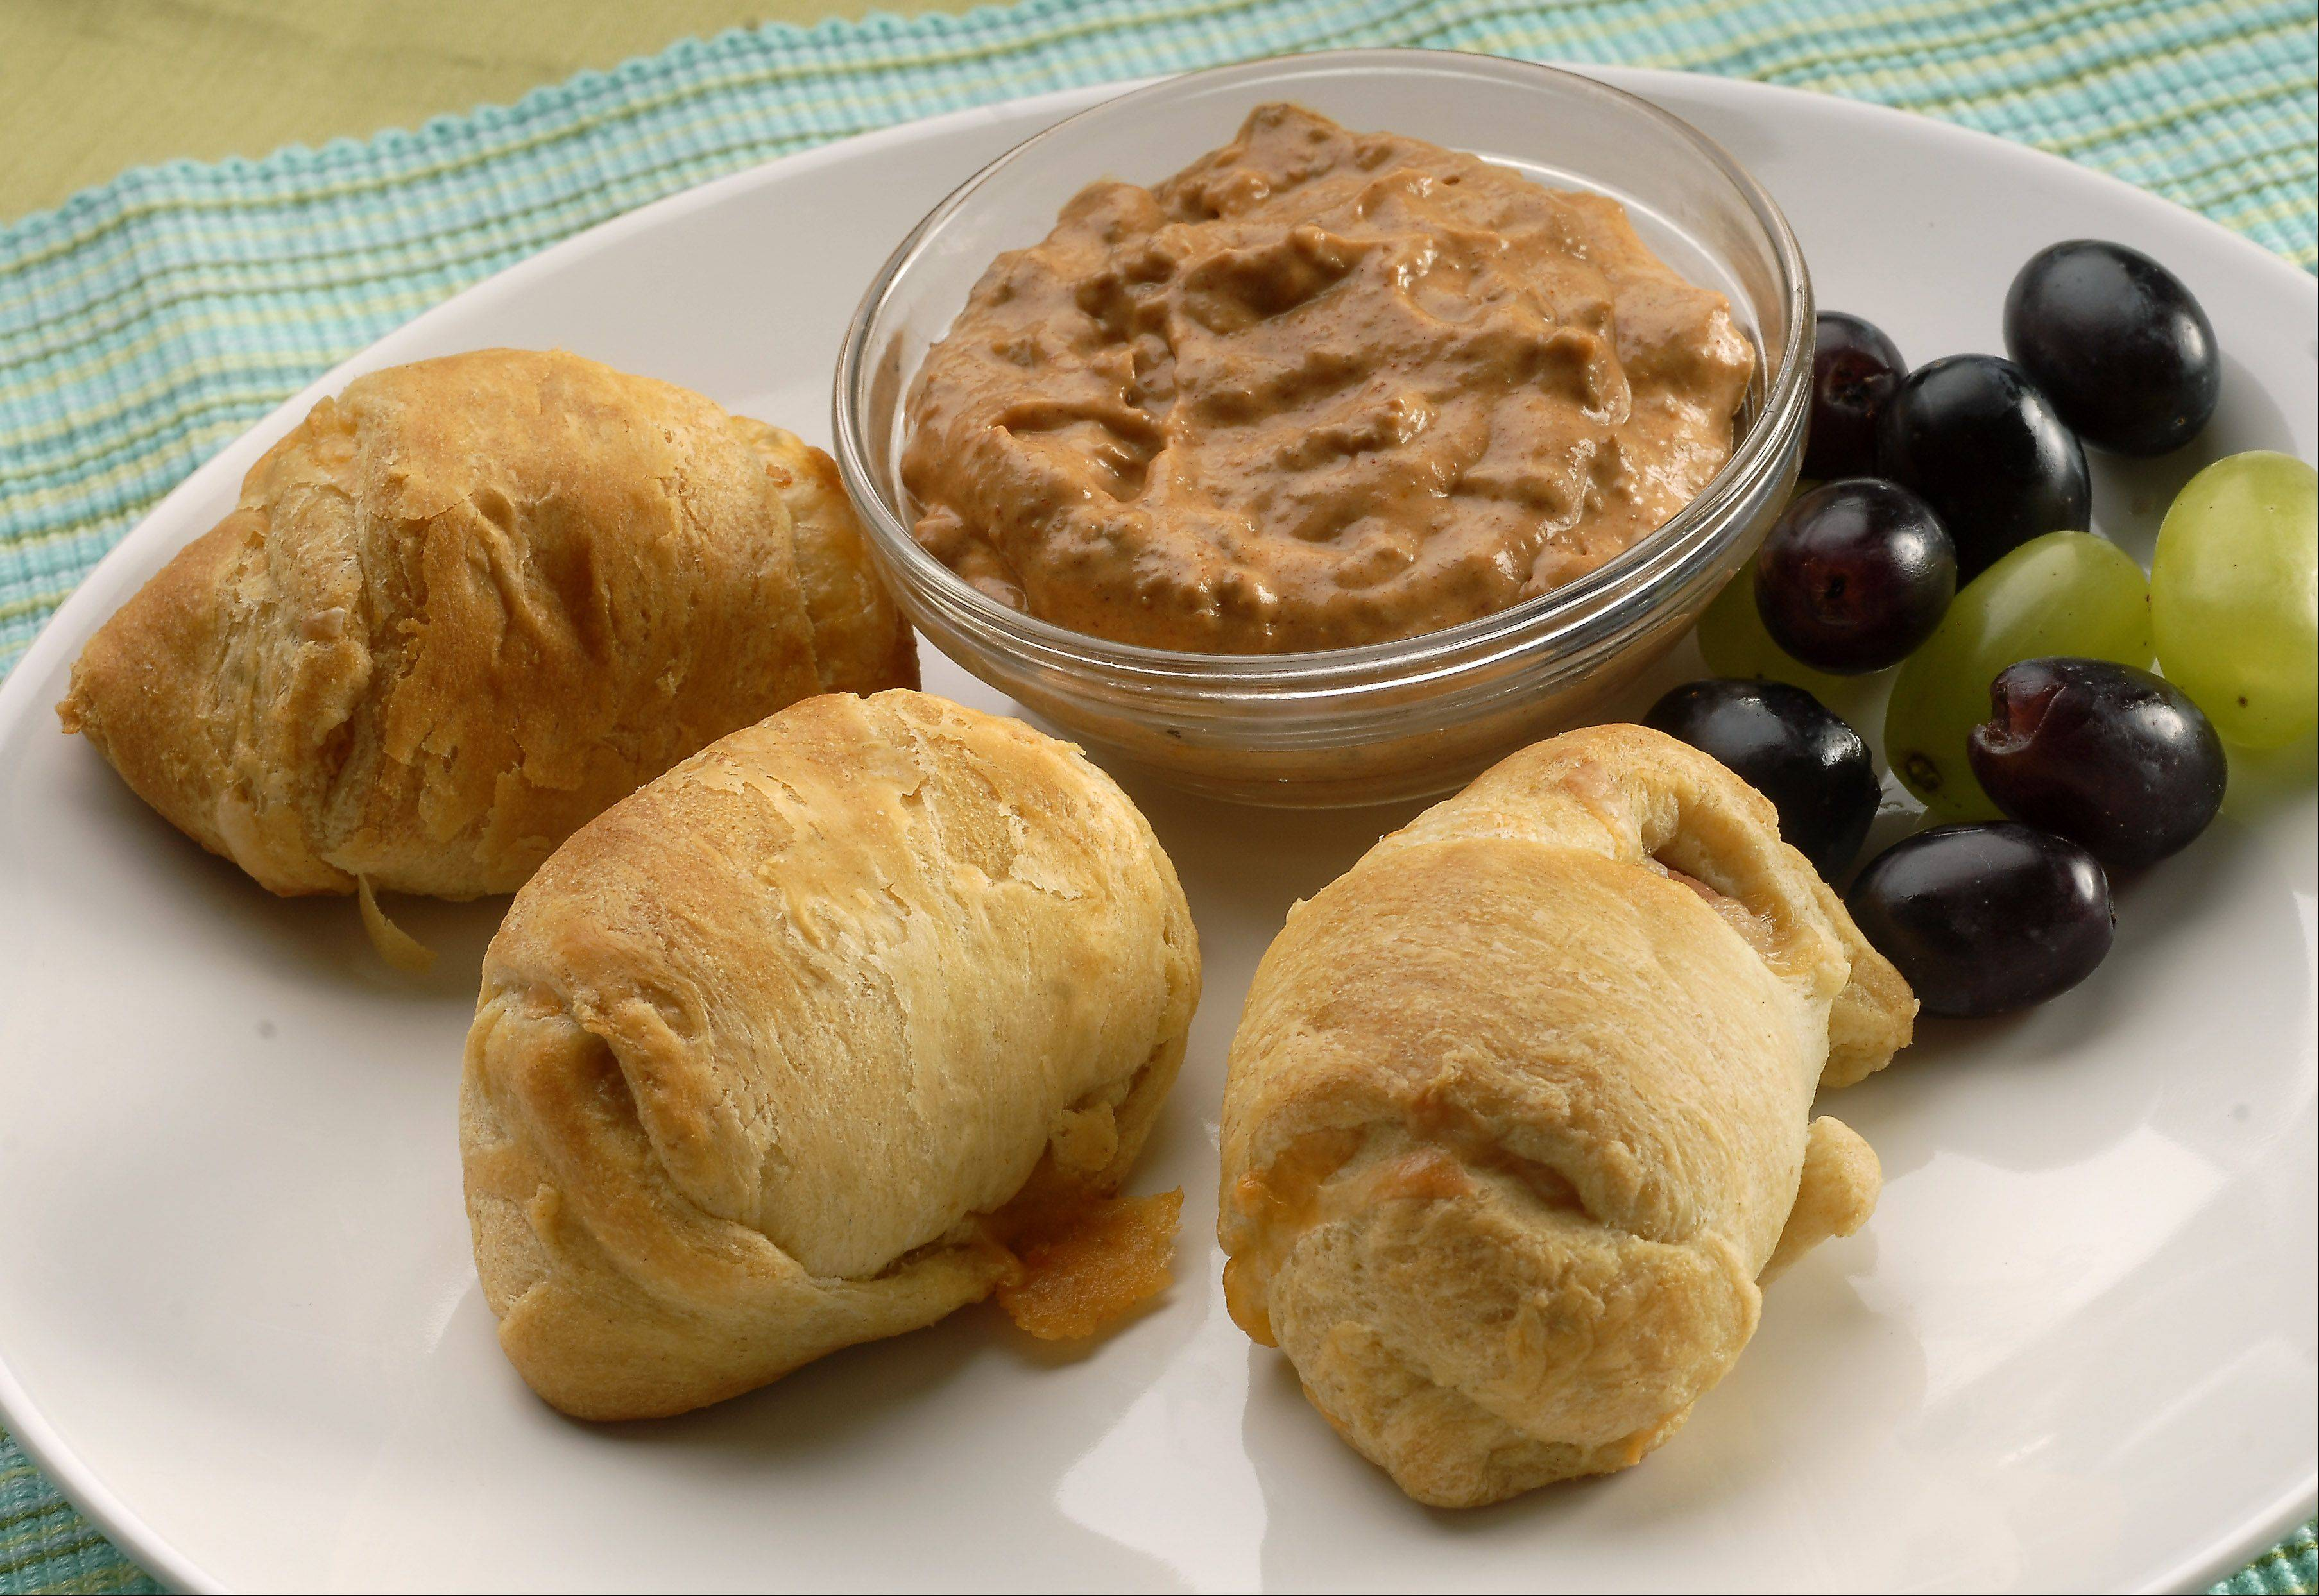 Bill Zars For a simple snack to share with friends, try these Mini Cheese Dogs with Chili Dip.